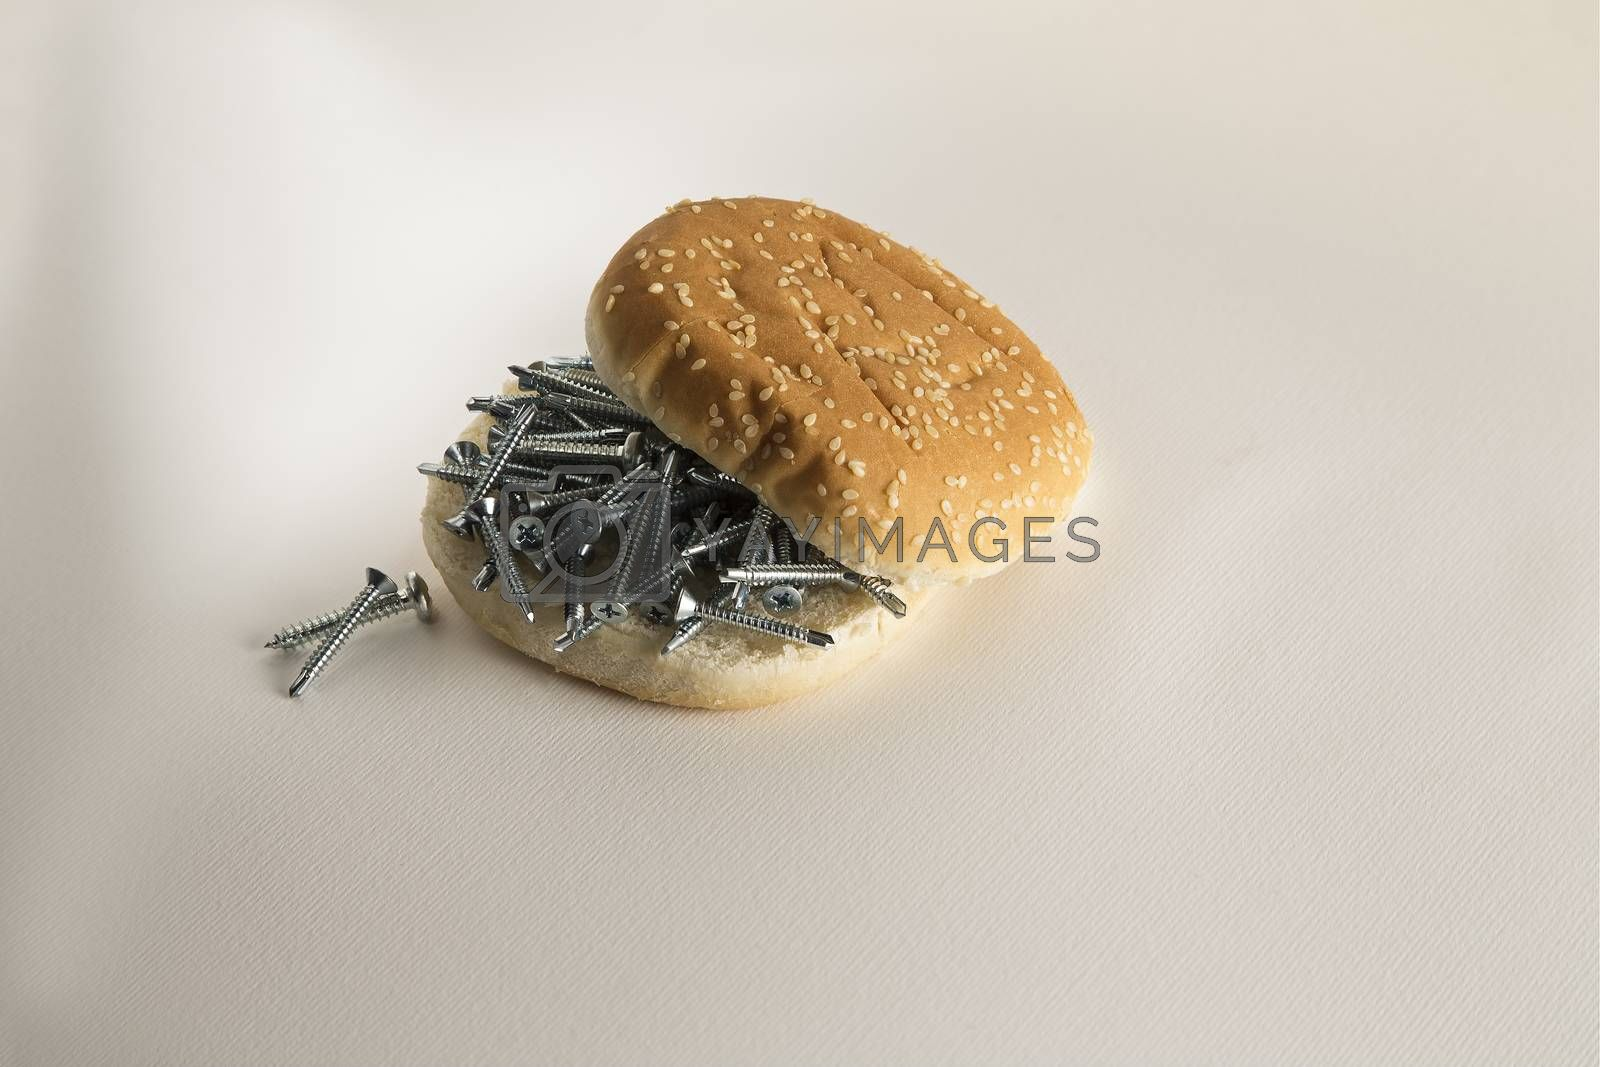 Fast food sesame bread  with screws